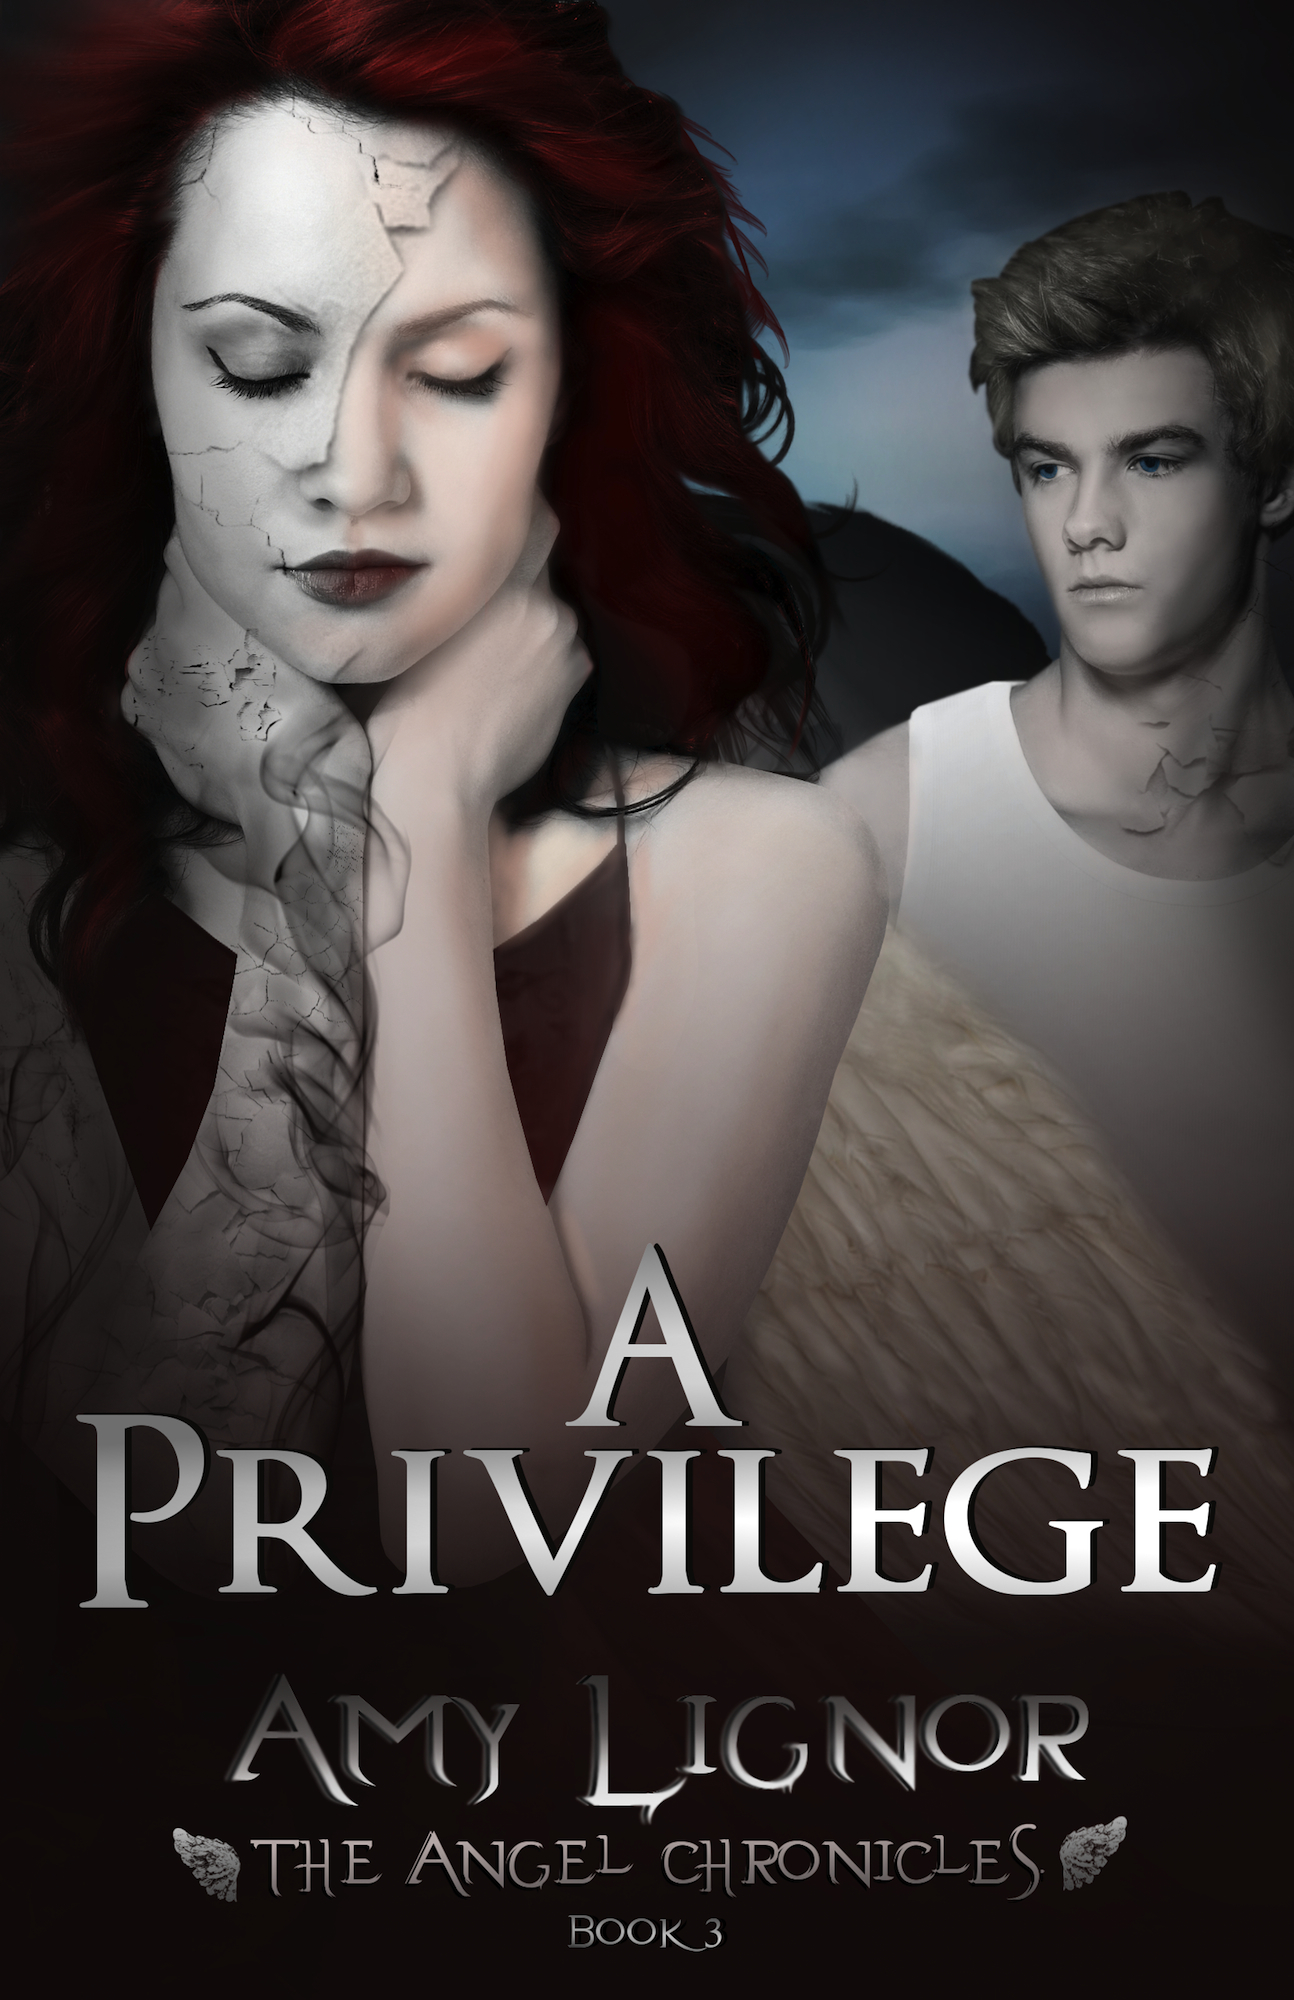 A Privilege: The Angel Chronicles, Book 3